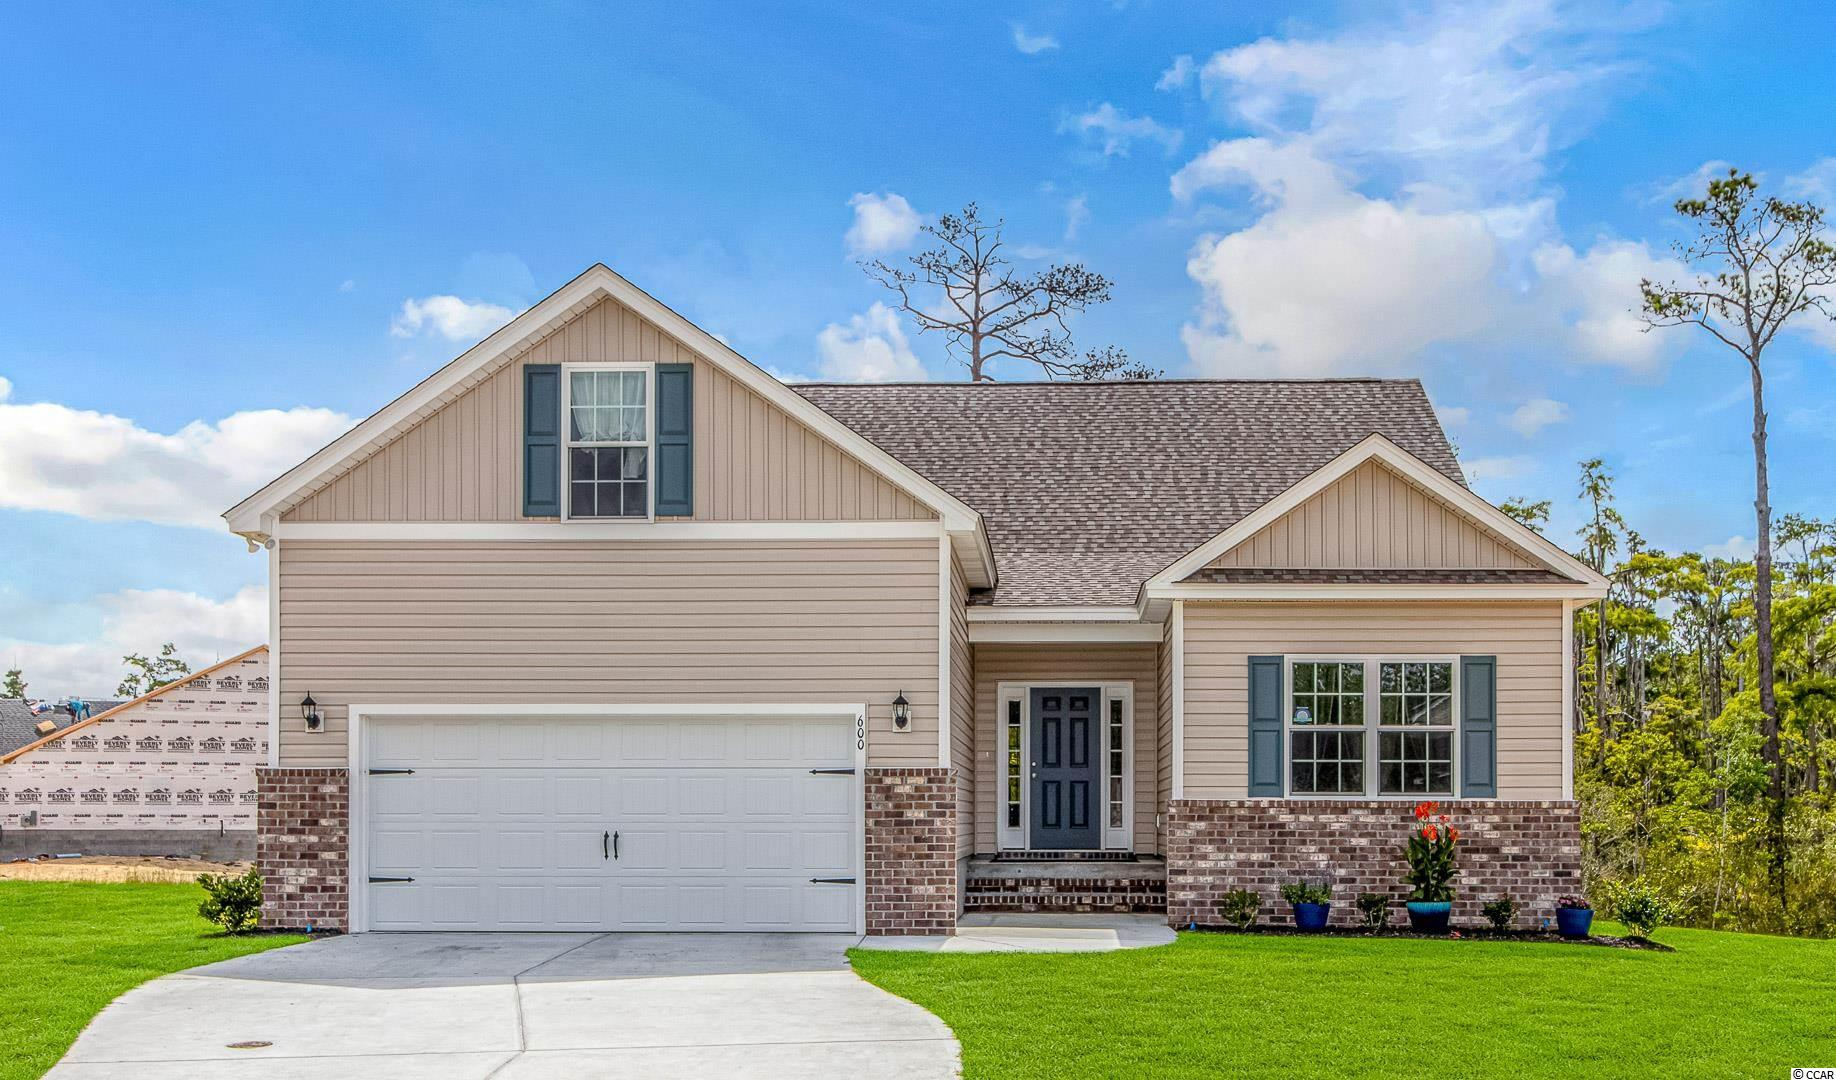 This 4 bedroom, 3 bathroom home is available in the Winyah Bay community in Georgetown. You can move into this like new home, constructed in 2021 without waiting for the building time! This home shows like a model and features LVP flooring throughout with carpet in the bedrooms. A desired open floor plan is present with plenty of windows allowing natural light to pour into the home as well as vaulted ceilings providing a spacious feel. The kitchen is immaculate, with white staggered, soft close cabinets with crown, granite counters, a work island with breakfast bar, tiled backsplash, stainless appliances and pantry. A laundry room and generous sized closed providing an abundance of storage sit off of the kitchen. A split bedroom plan is present in this home. The master suite has elegant tray ceilings, a double vanity and oversized shower. Two guest bedrooms are on the main level and upstairs you will find another bedroom which includes a walk-in closet and full bathroom. This water-oriented community just off of Winyah Bay has a community clubhouse with boat dock and ramps, as well as boat and RV parking. Measurements are not guaranteed and are the buyer's responsibility to verify.